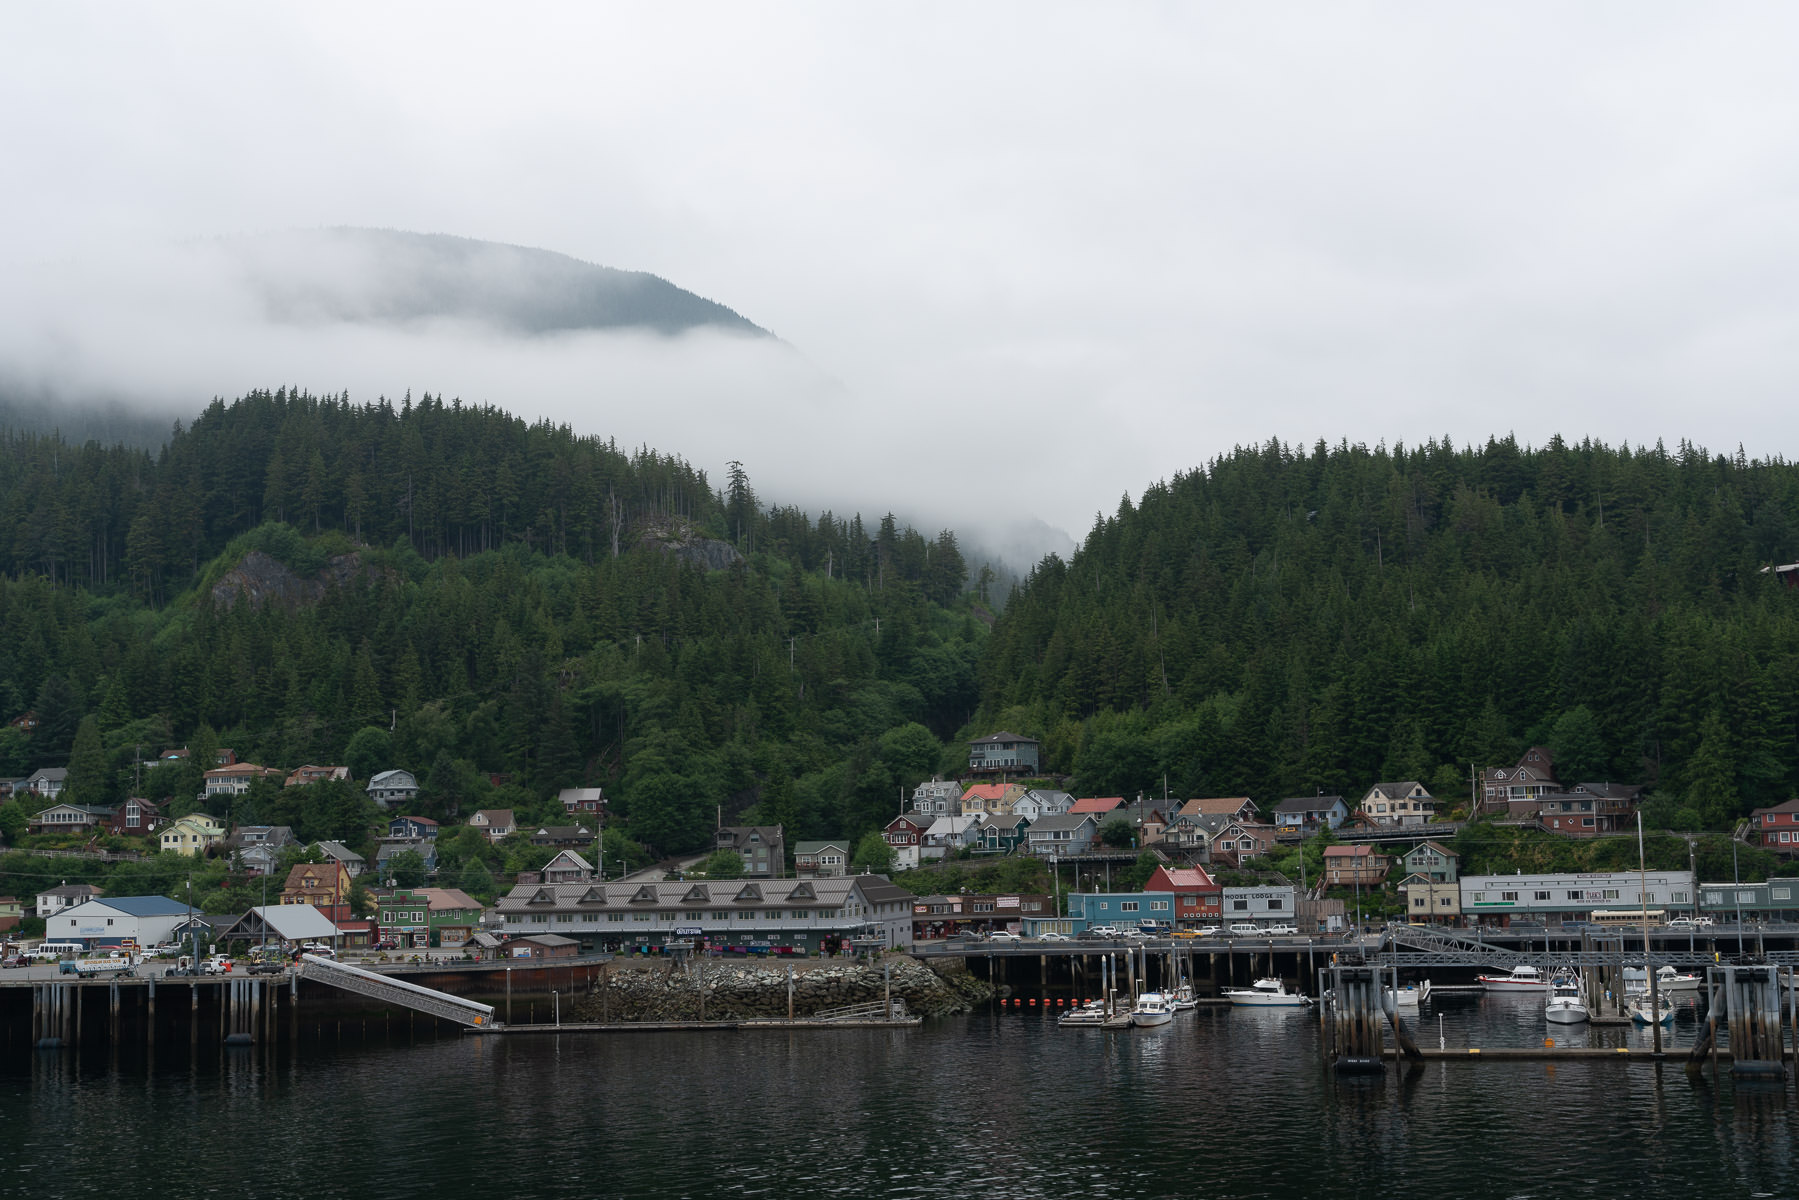 The Ketchikan, Alaska, cityscape on a dreary day.